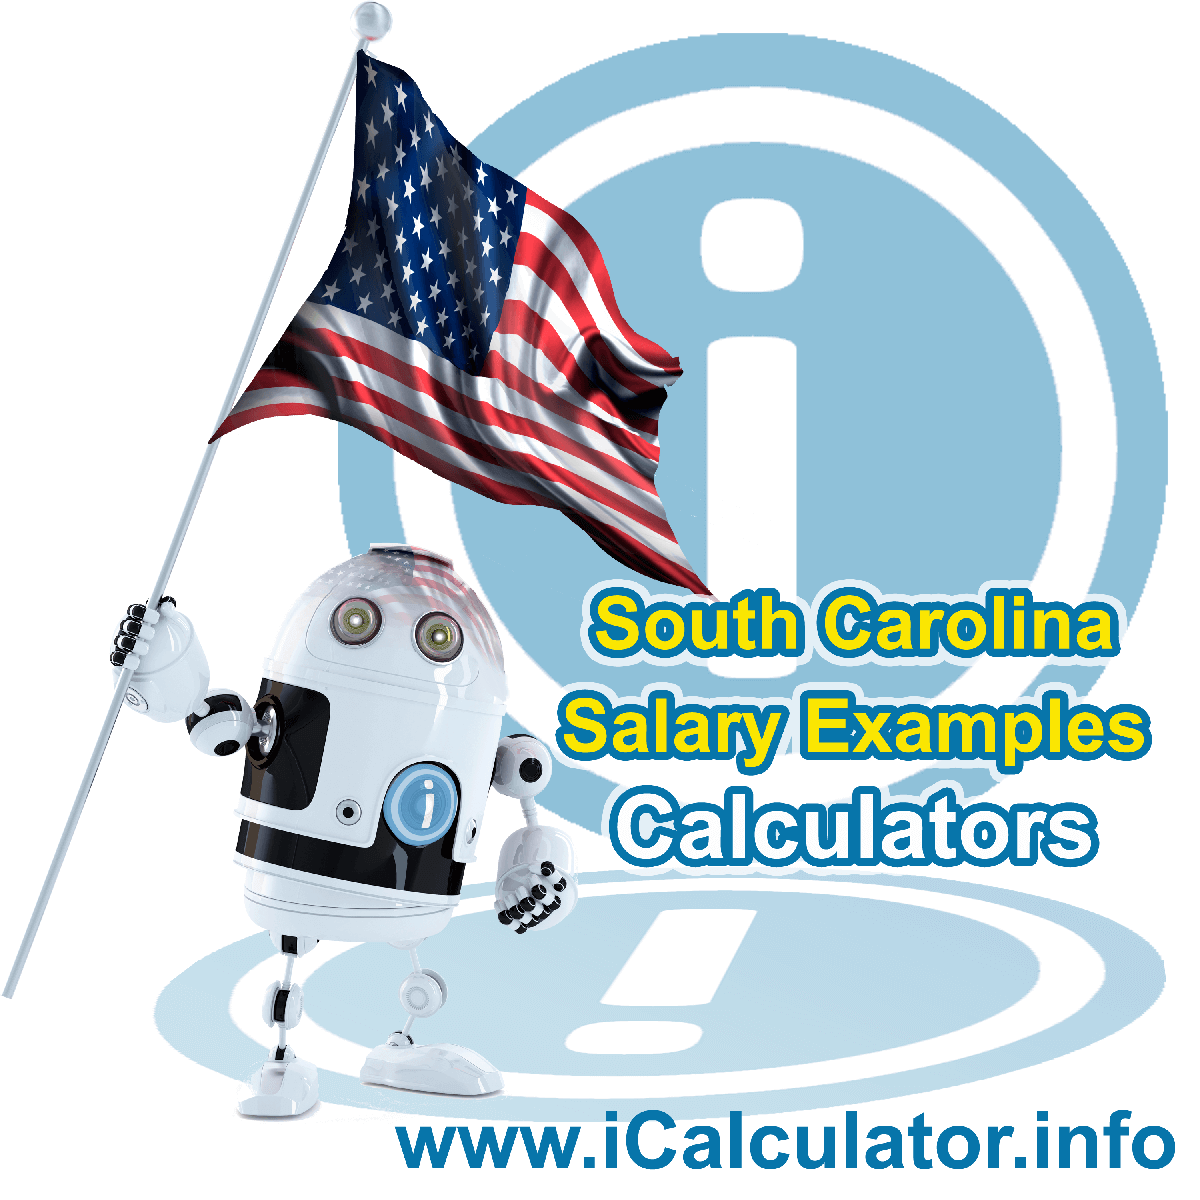 South Carolina Salary Example for a $110.00 Annual Salary in 2020 | iCalculator | $110.00 salary example for employee and employer paying South Carolina State tincome taxes. Detailed salary after tax calculation including South Carolina State Tax, Federal State Tax, Medicare Deductions, Social Security, Capital Gains and other income tax and salary deductions complete with supporting South Carolina state tax tables